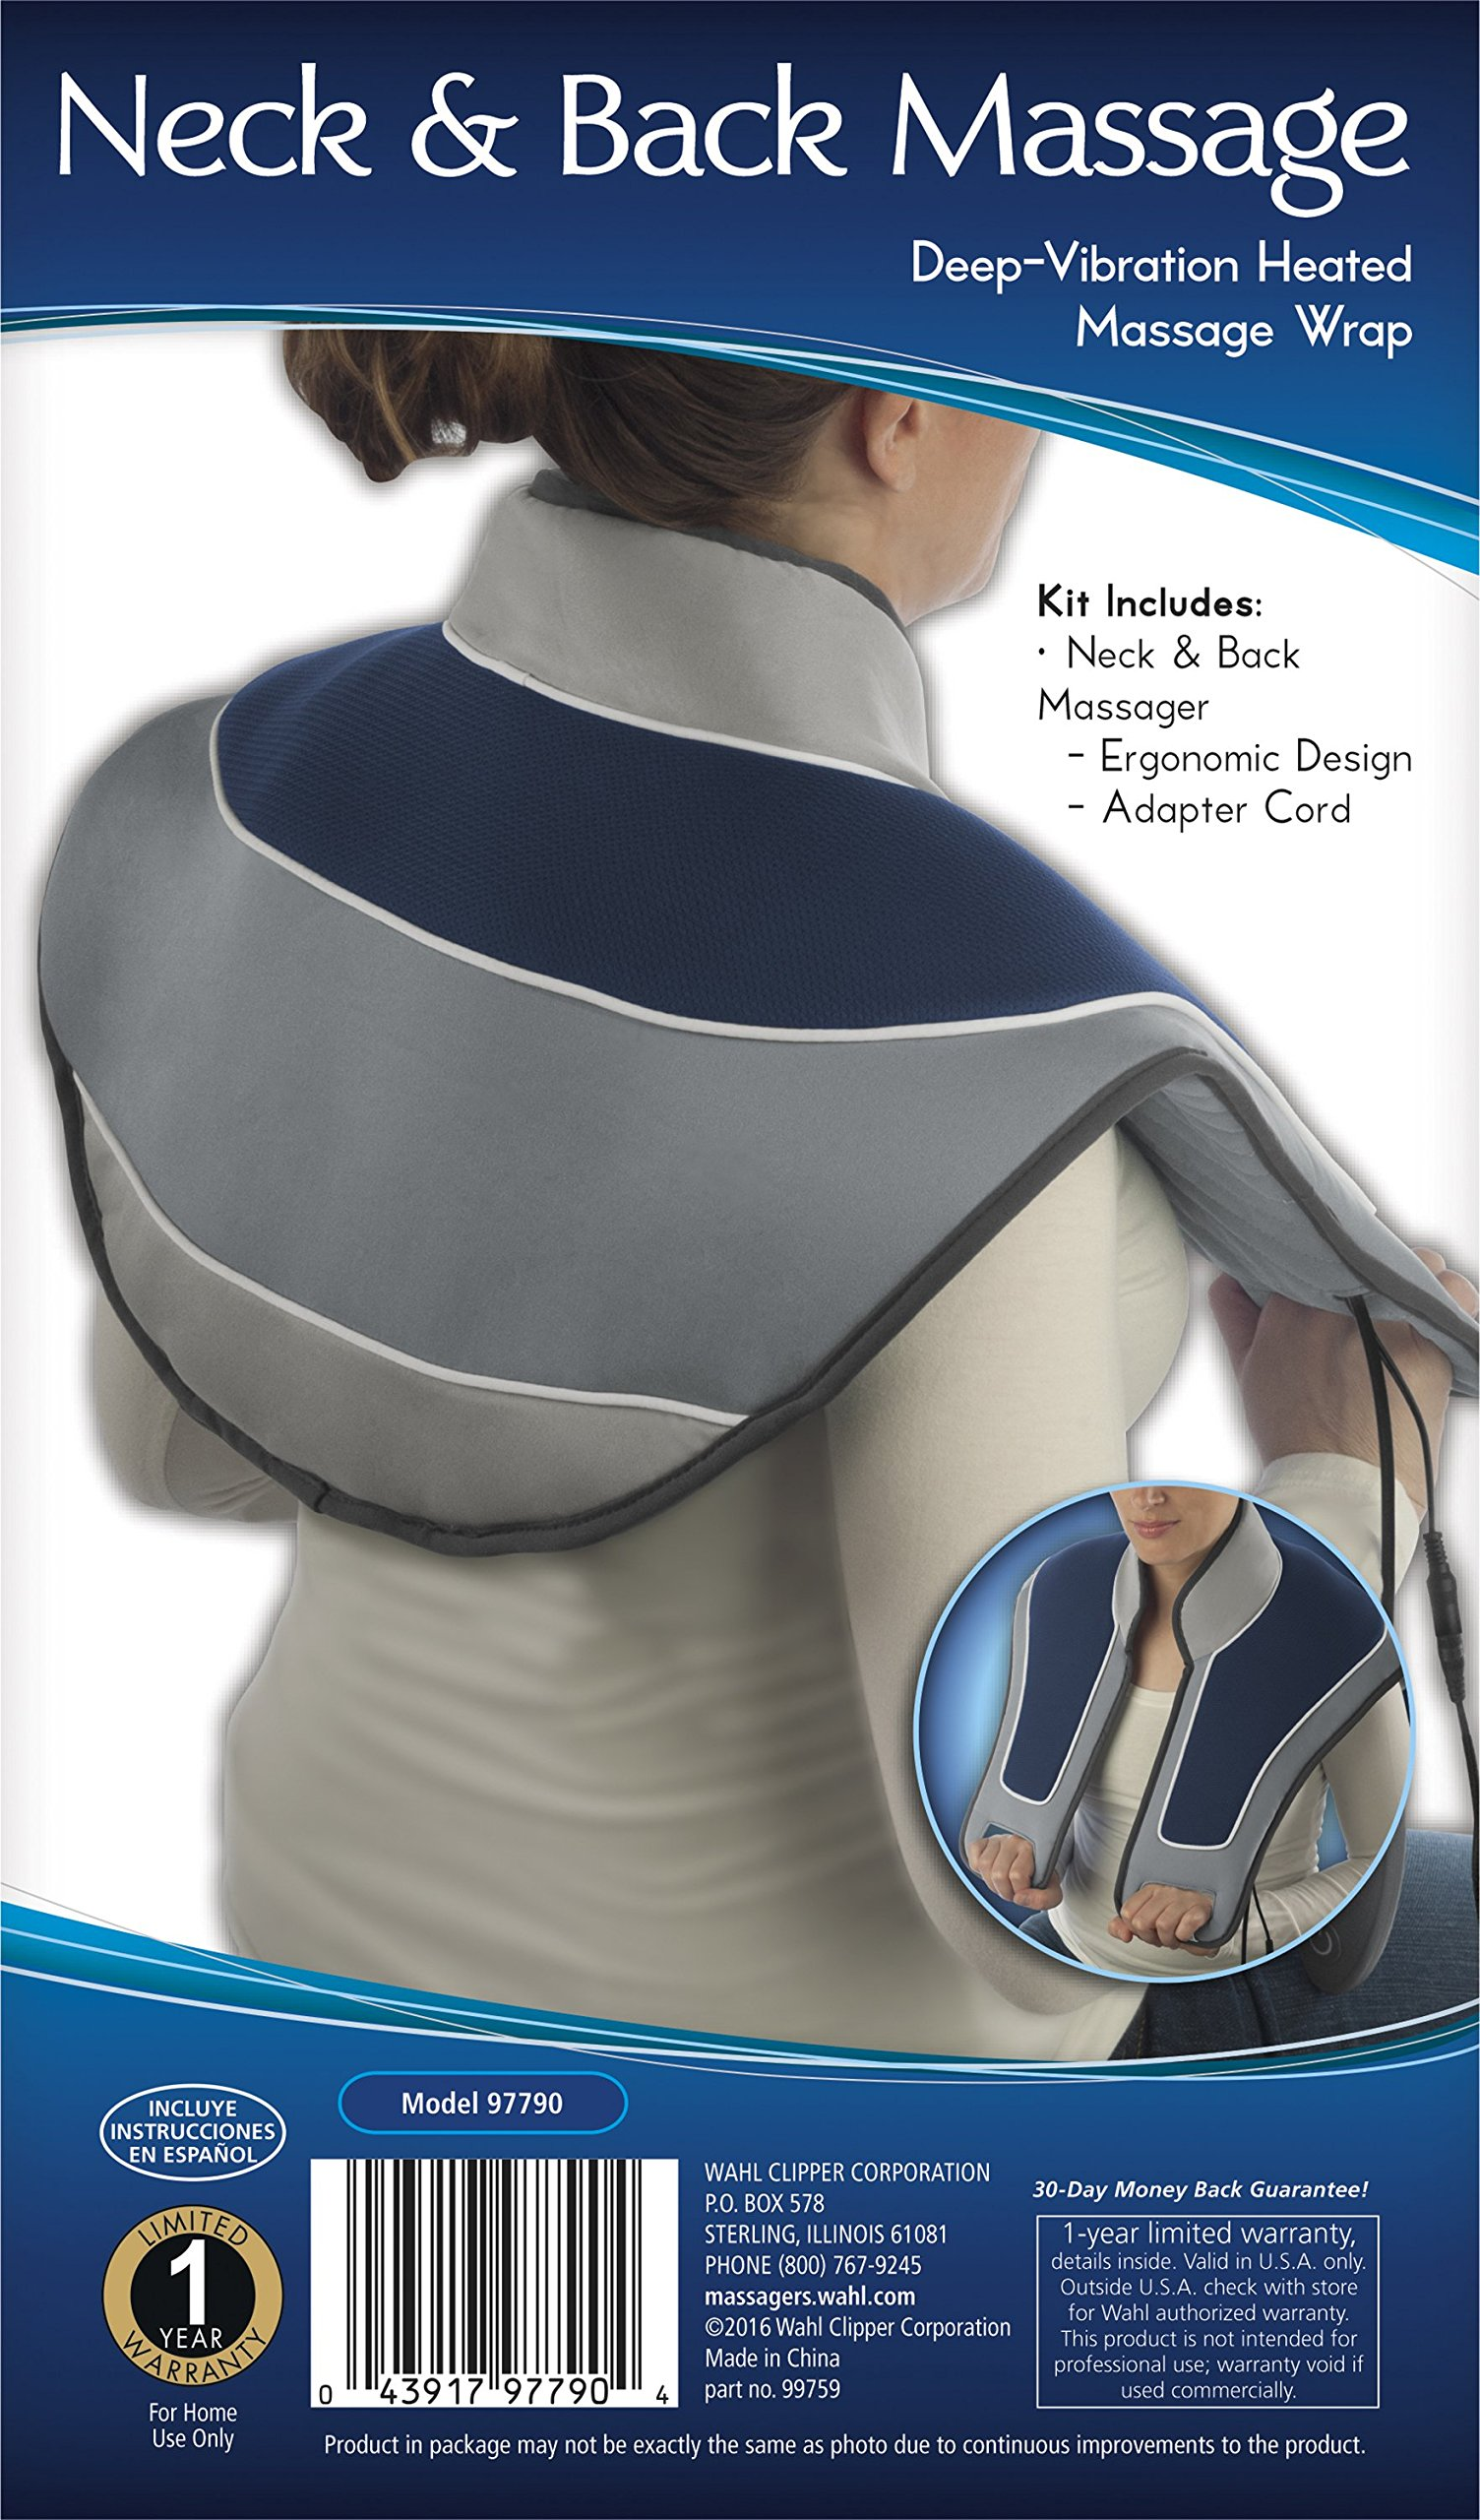 Heat Massage Therapy For Neck And Shoulder Soft Pad Heated